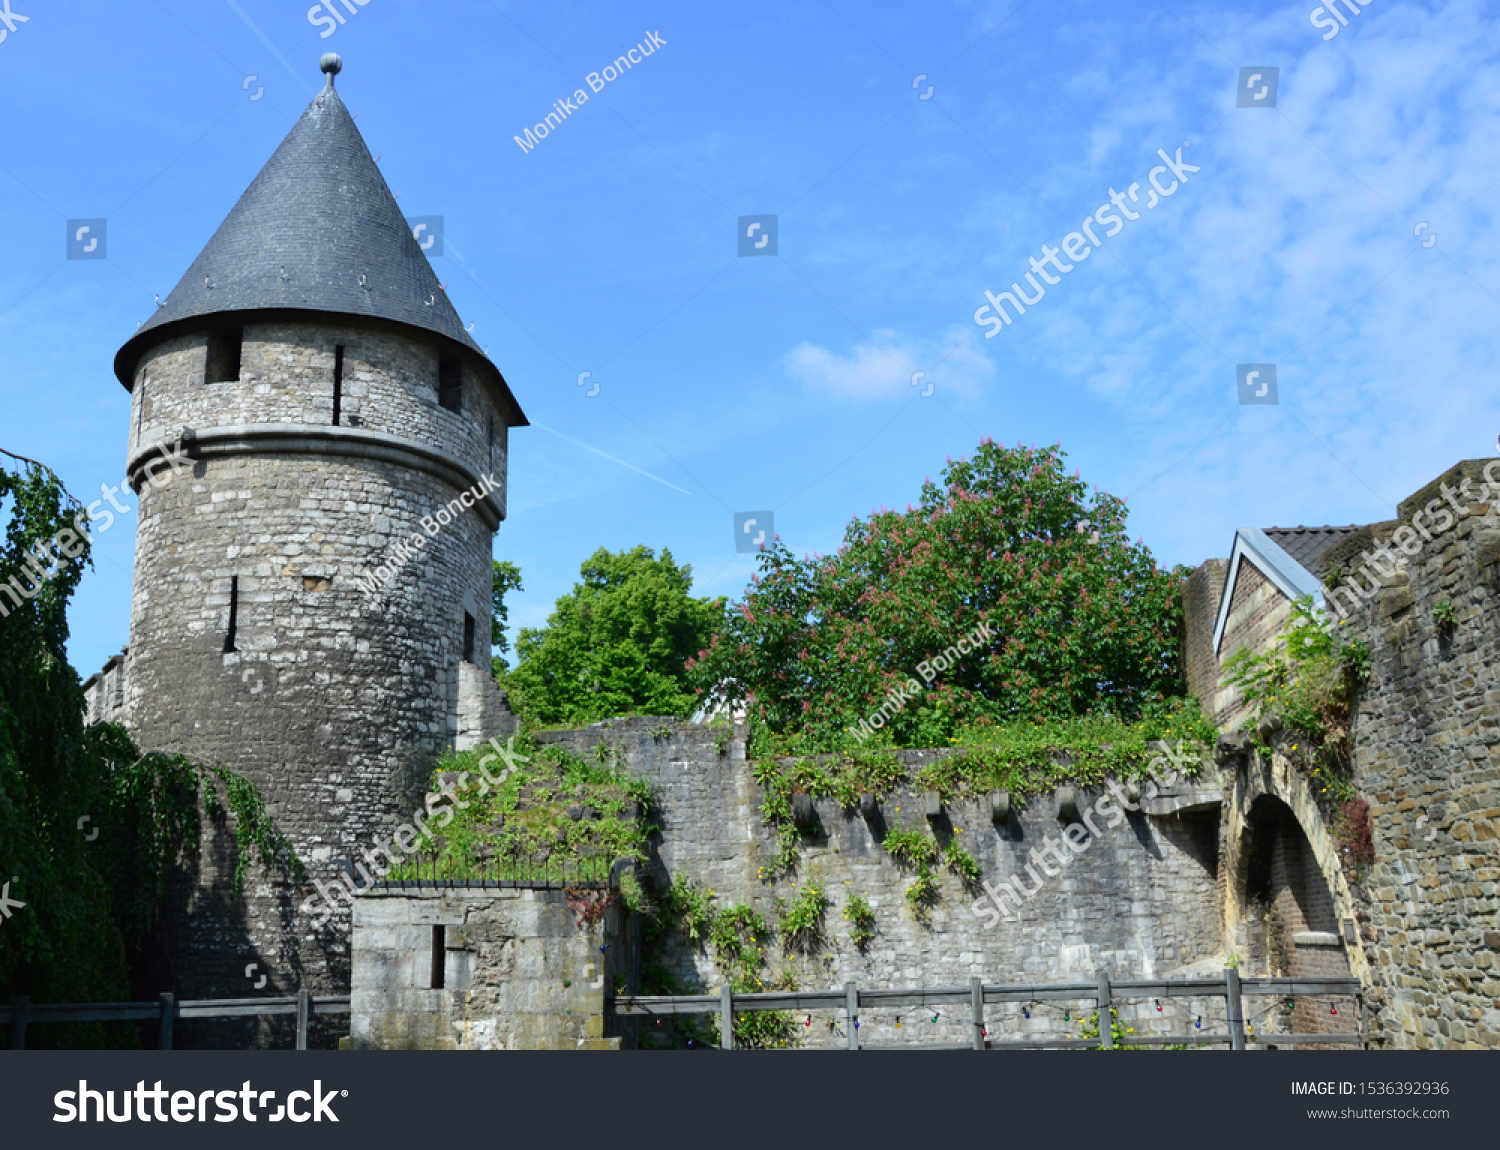 stock-photo-an-old-tower-and-wall-in-maa